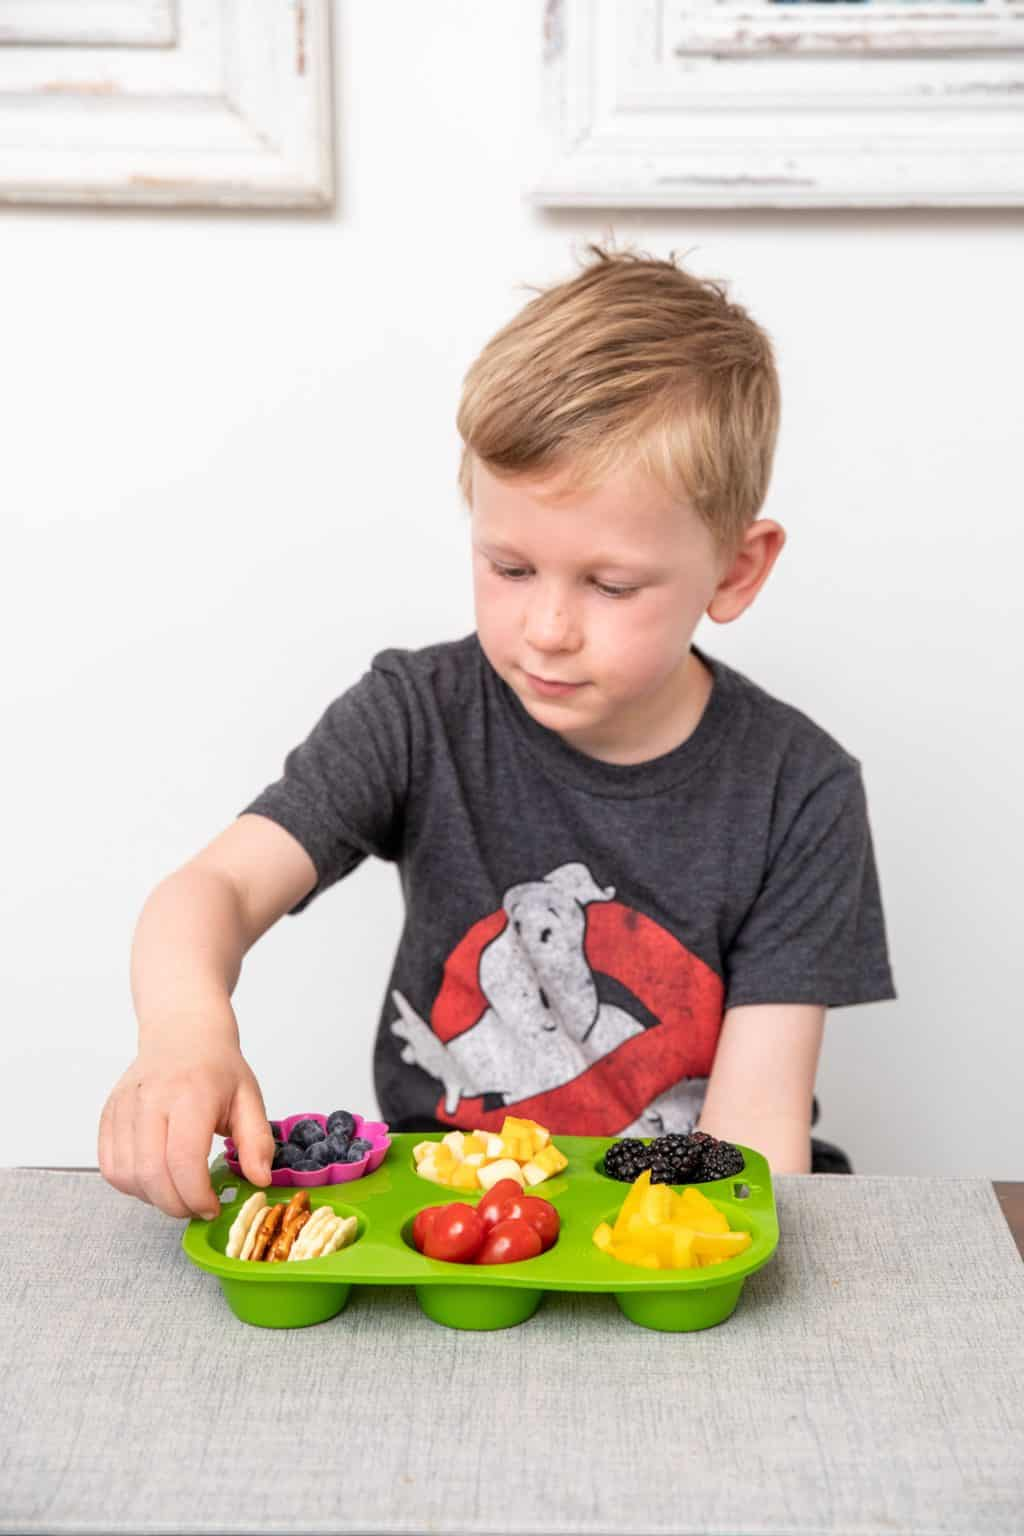 child eating from a snack board